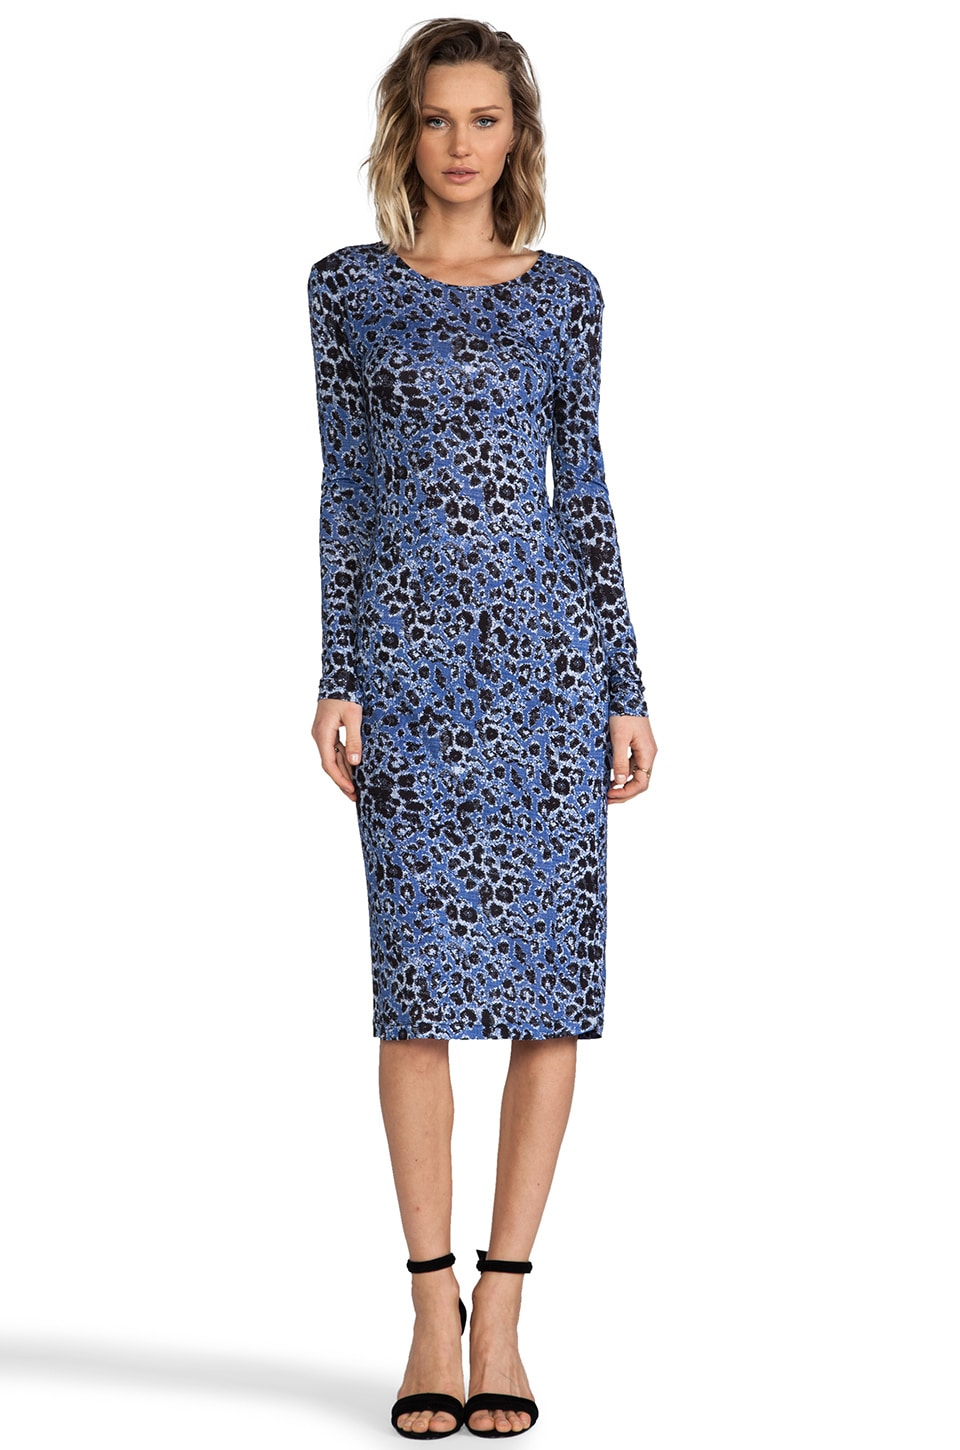 DEREK LAM 10 CROSBY Long Sleeve Dress in Periwinkle